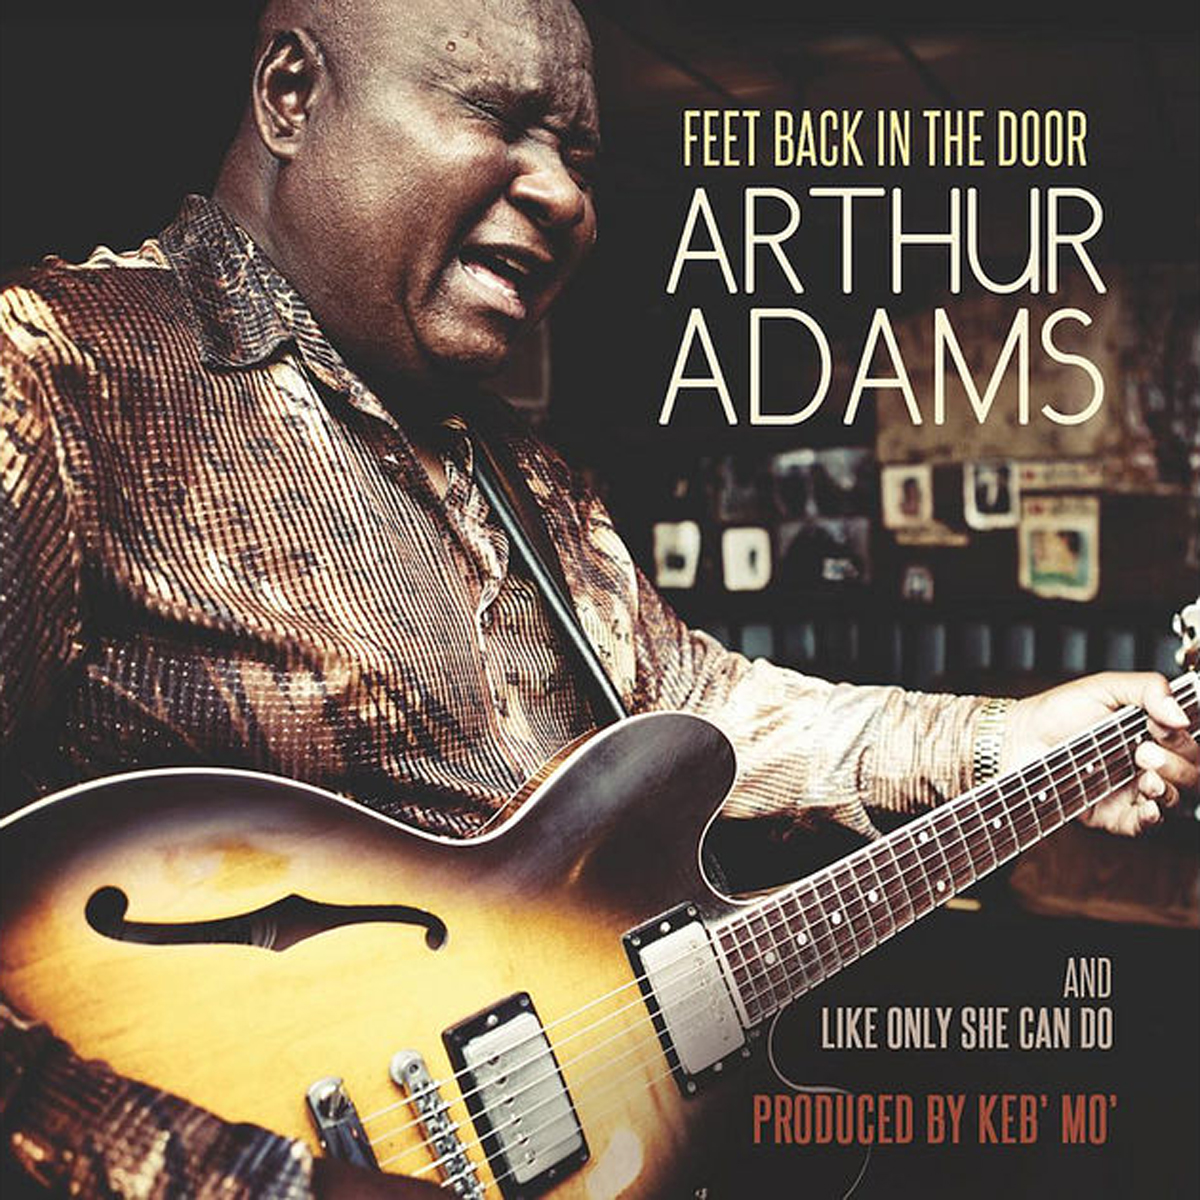 Arthur Adams - Feet Back In The Door